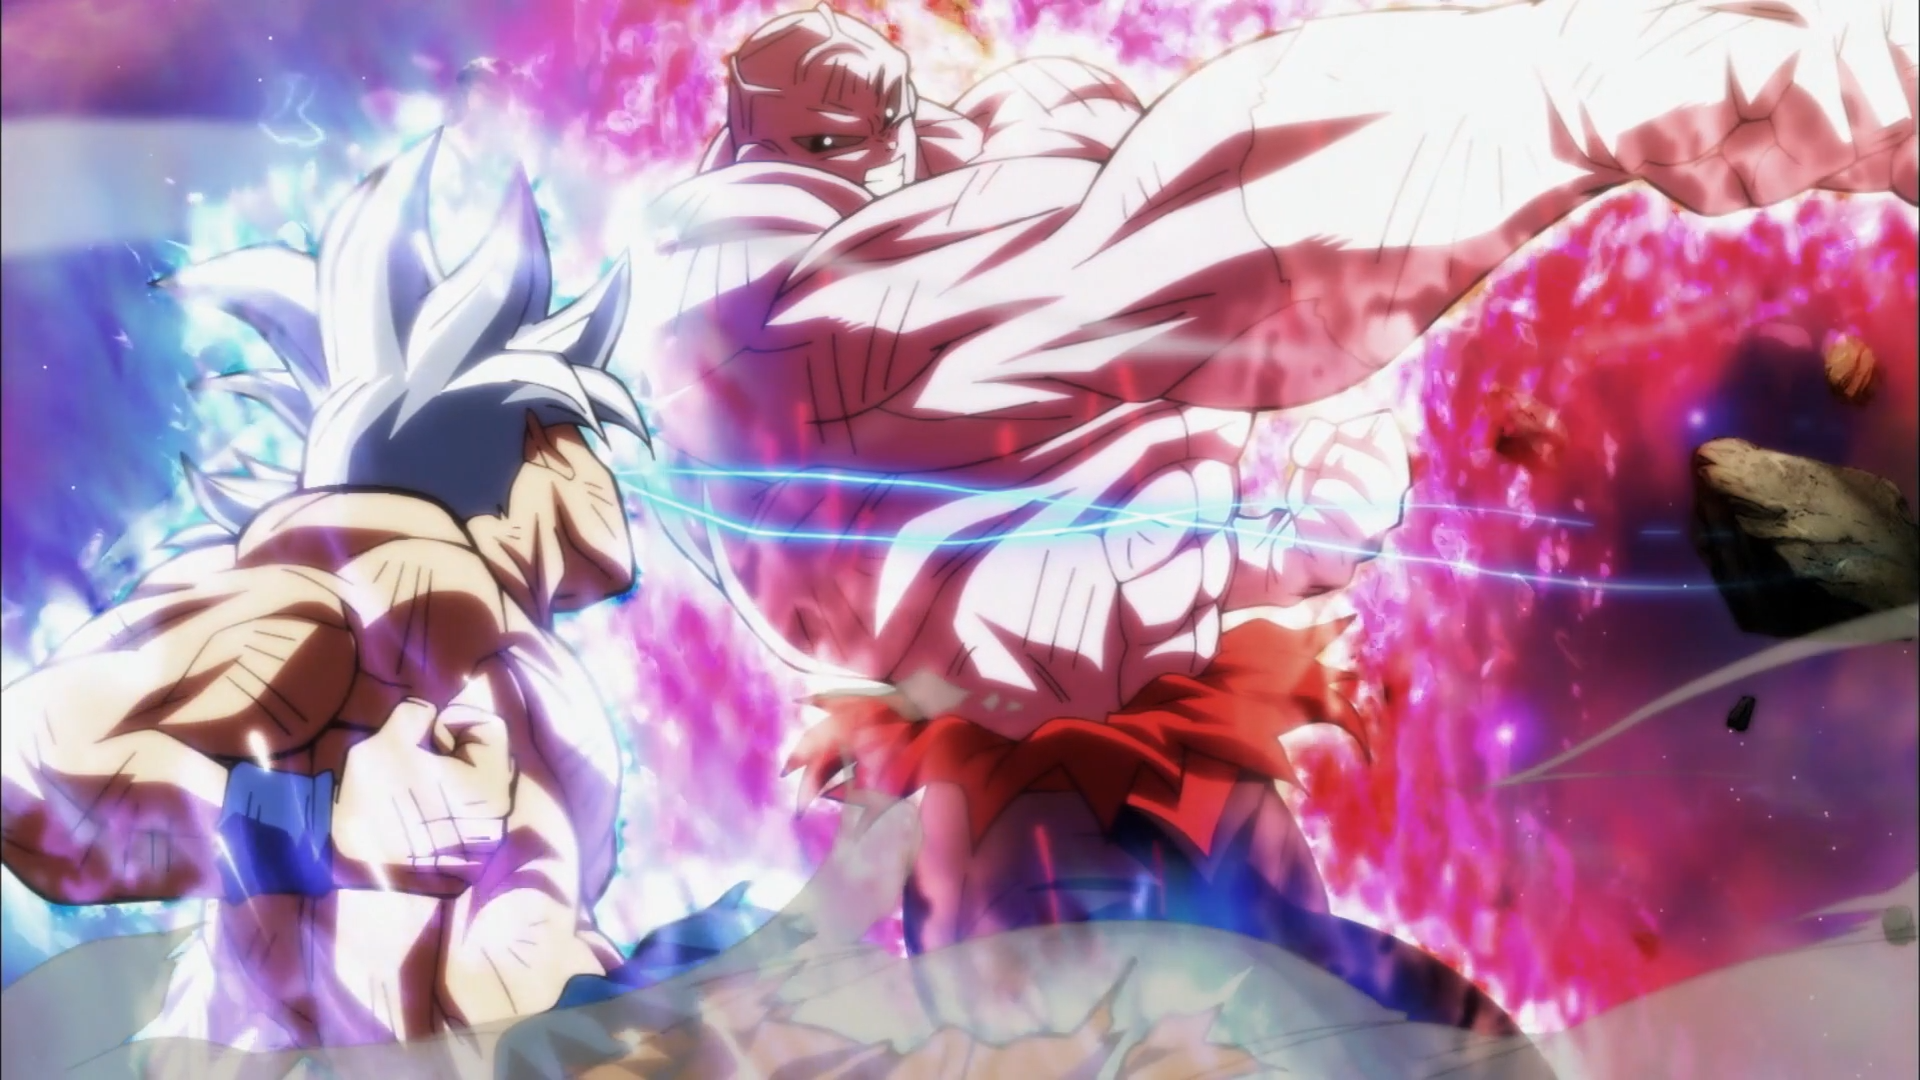 Son Goku Ultra Instinct Vs Jiren Hd Wallpaper Background Image